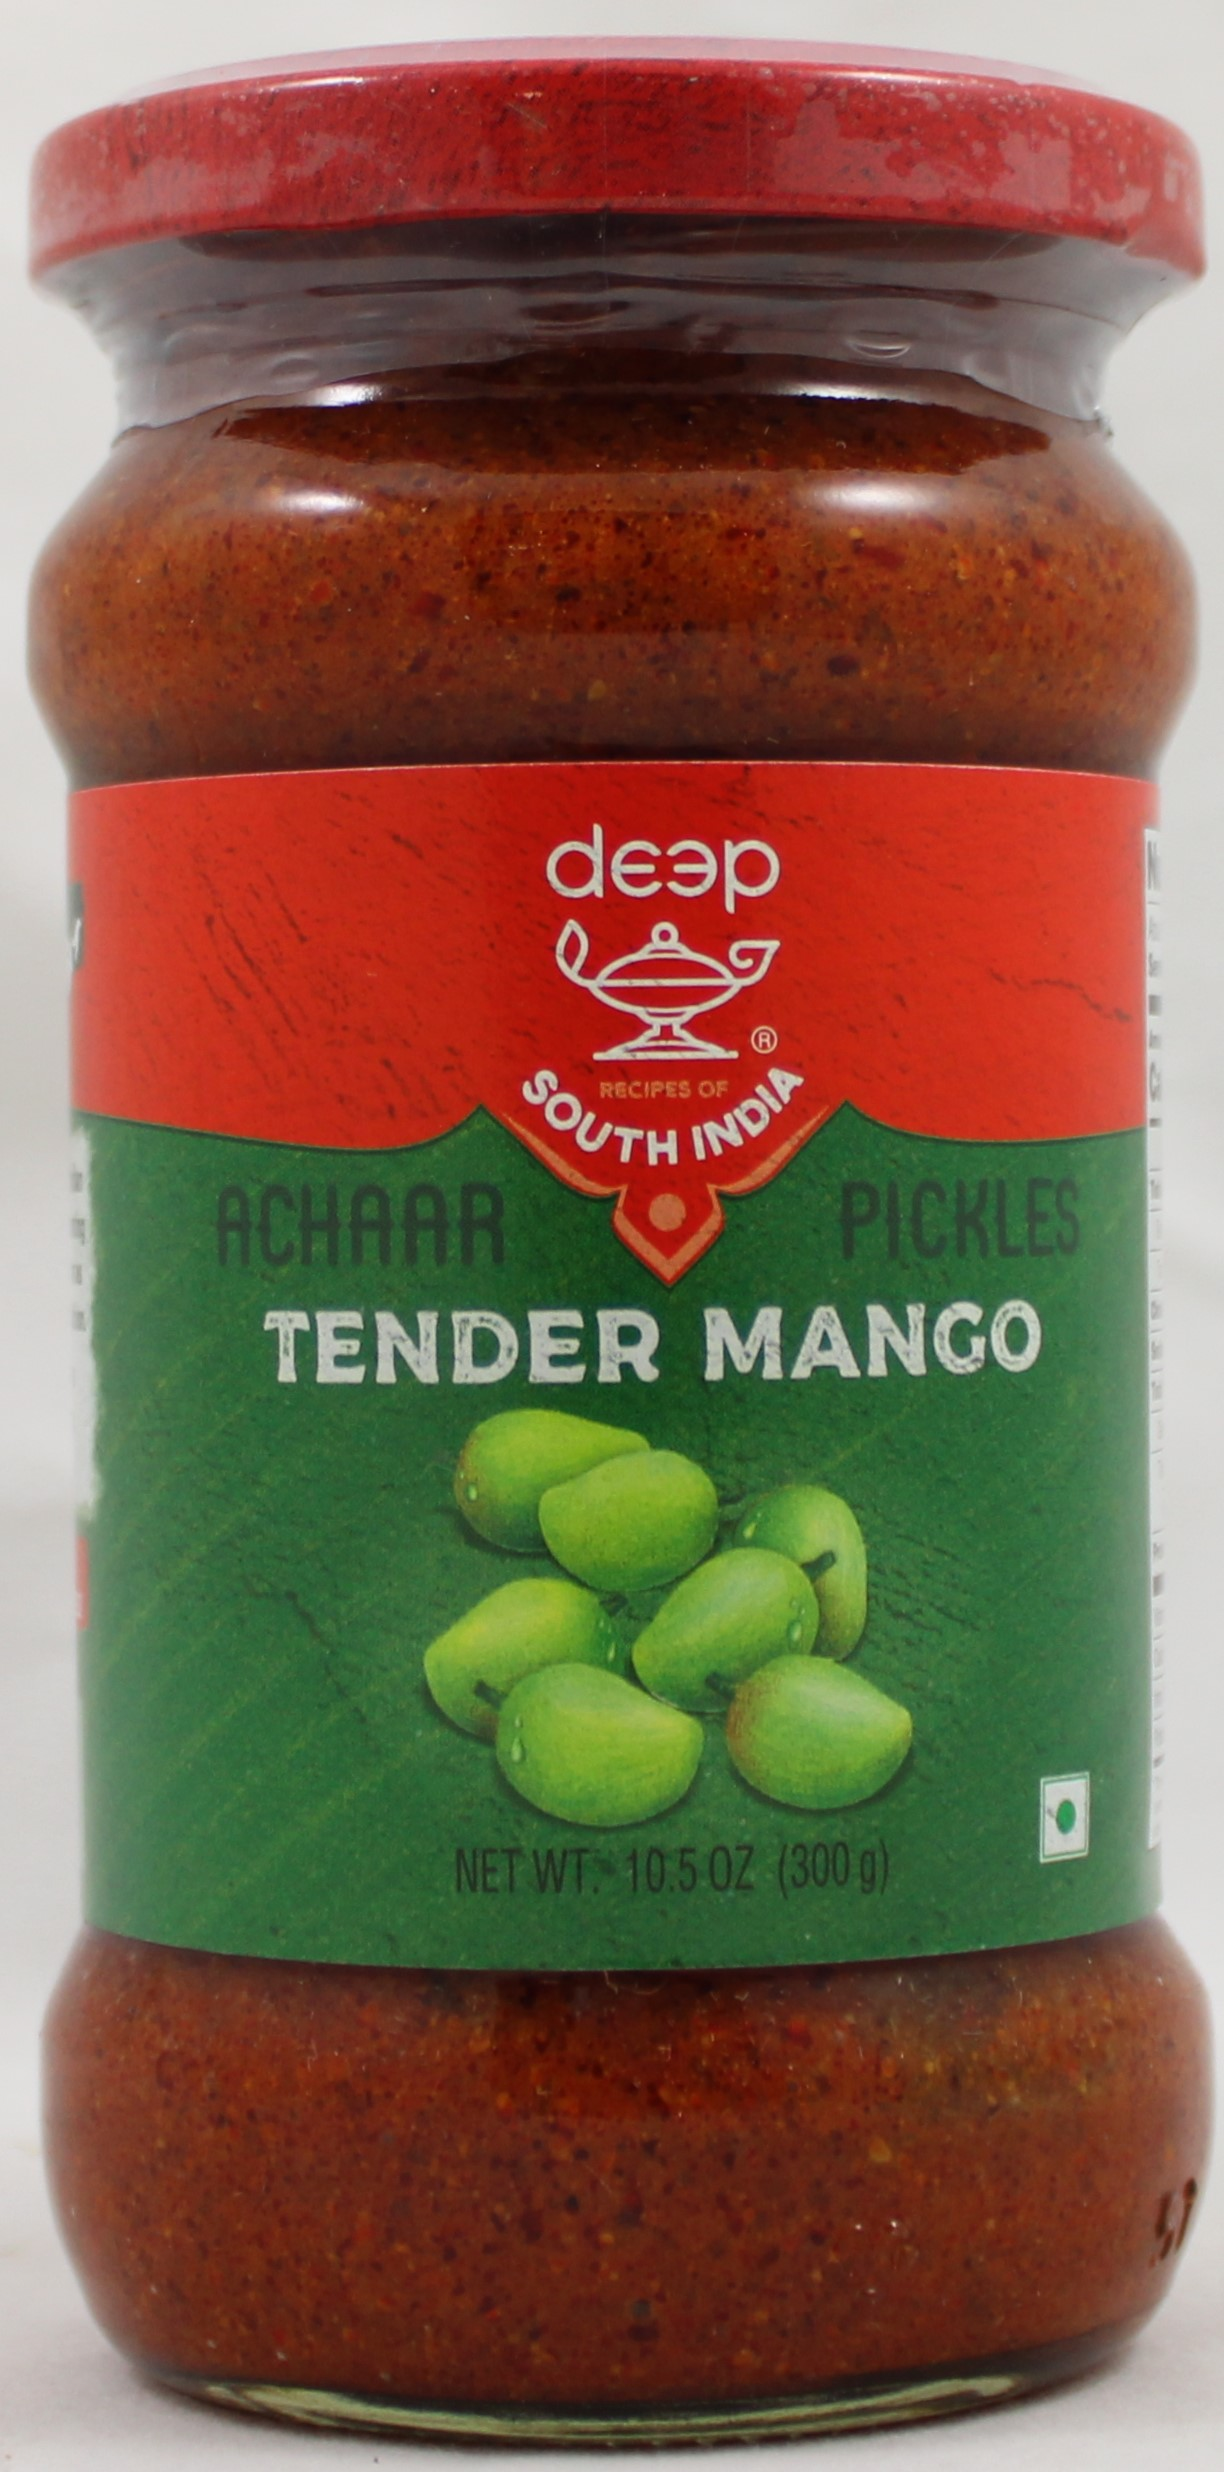 Tender Mango Pickl10.5oz.